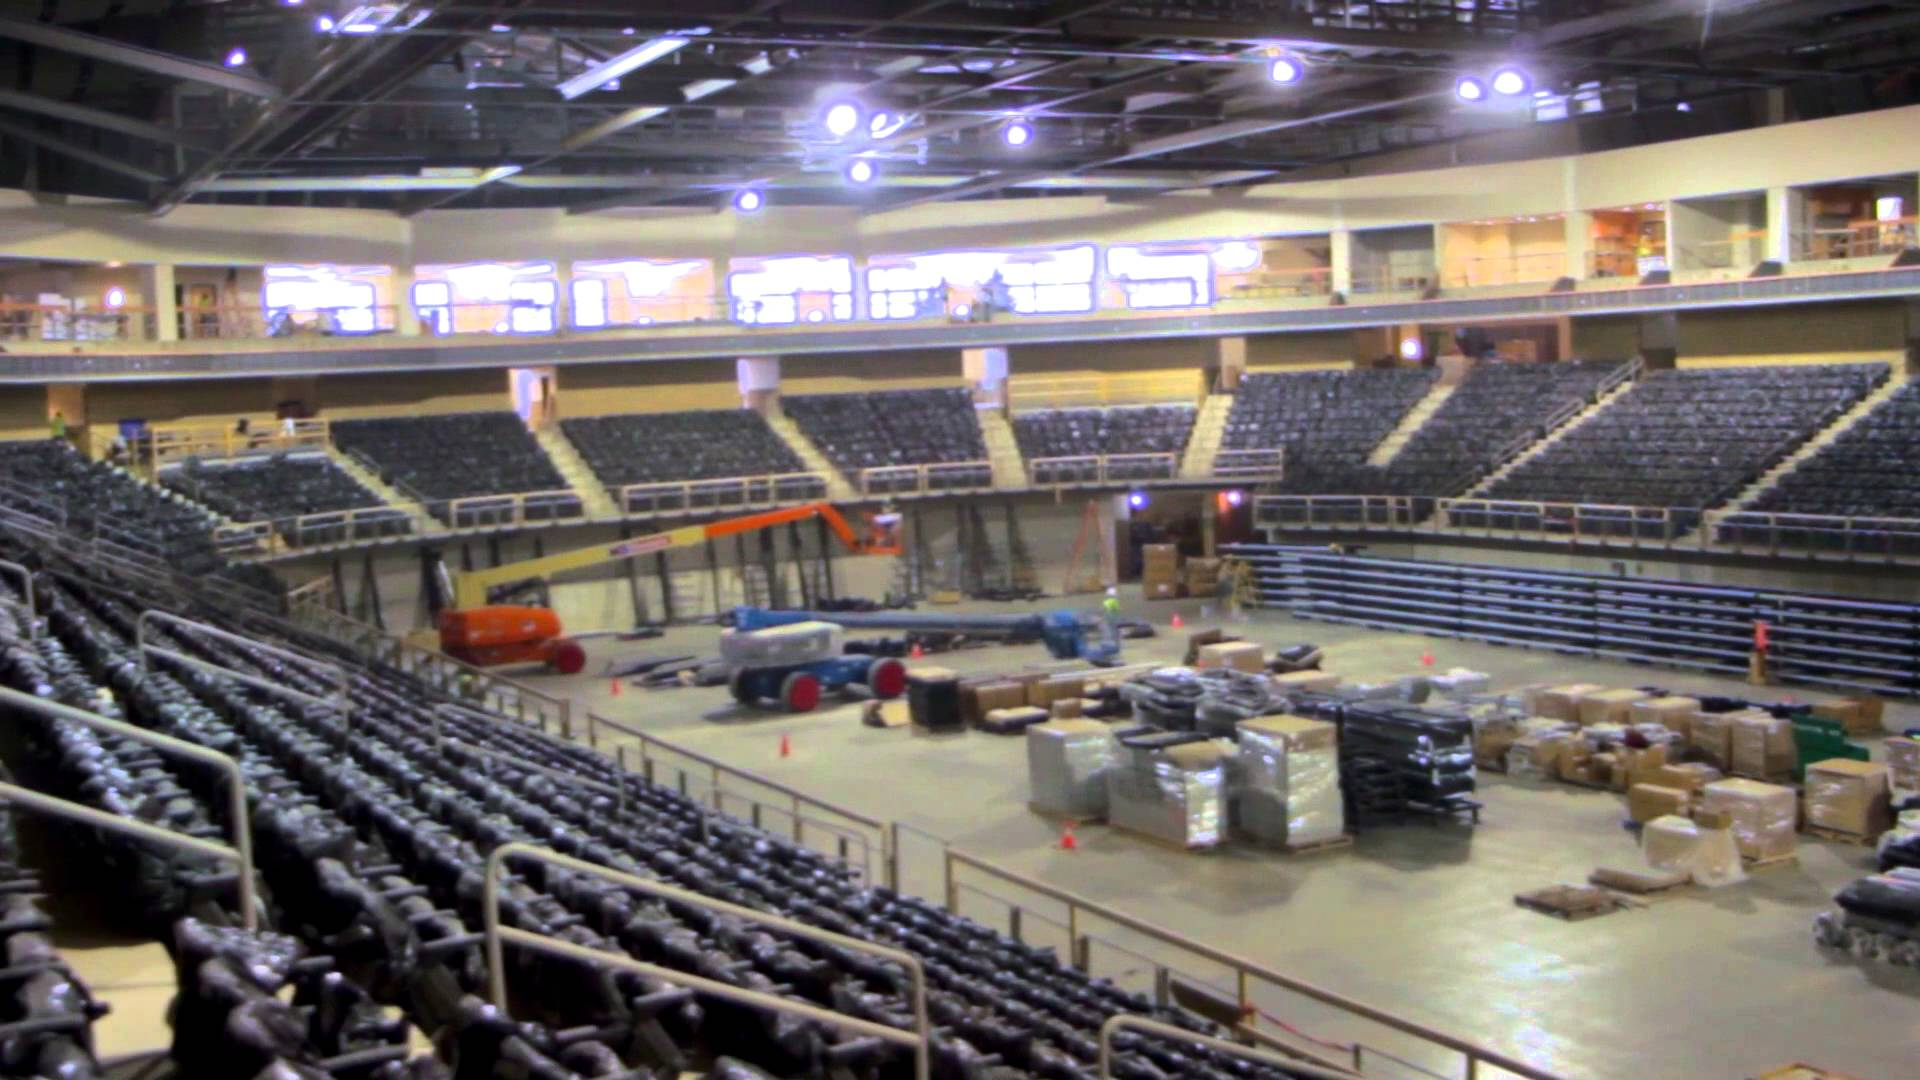 cross insurance arena photo - 1